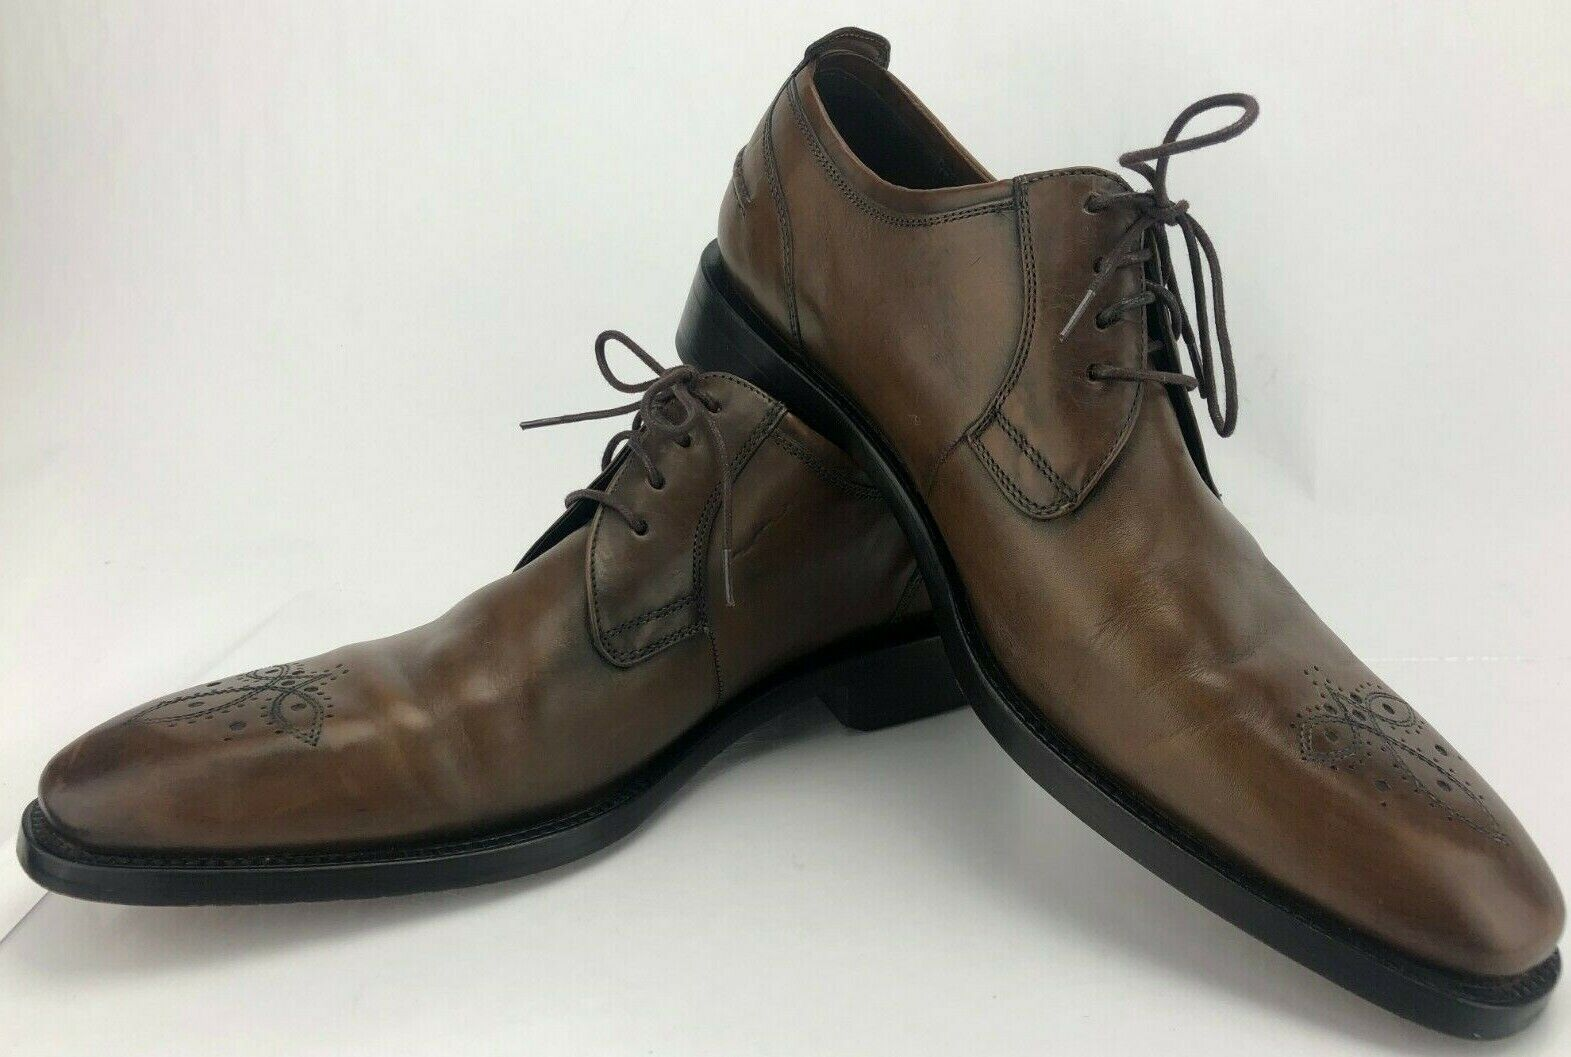 Cole Haan Dress Oxfords Brogue Toe Brown Lace Up Formal Leather Derby Mens 11 M